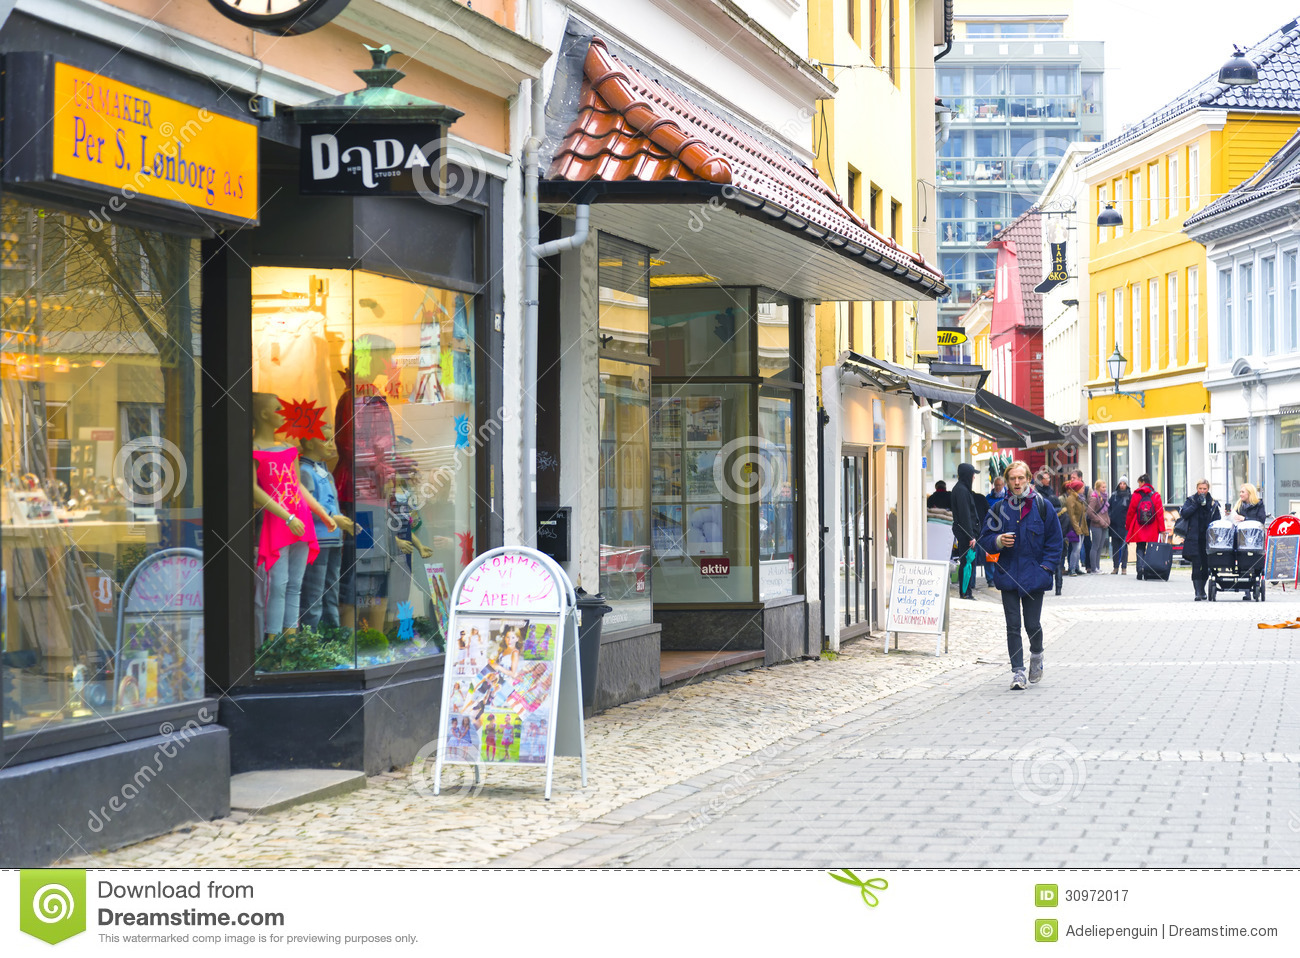 Shopping in Bergen. Bergen has long been a trading town and its shops range from the small and specialised to large department stores. Visitors should not expect too many bargains, however, as Norway is a notoriously expensive country, and prices are high (although depending on where you're travelling from, tax can be refunded upon departure).. Key areas.